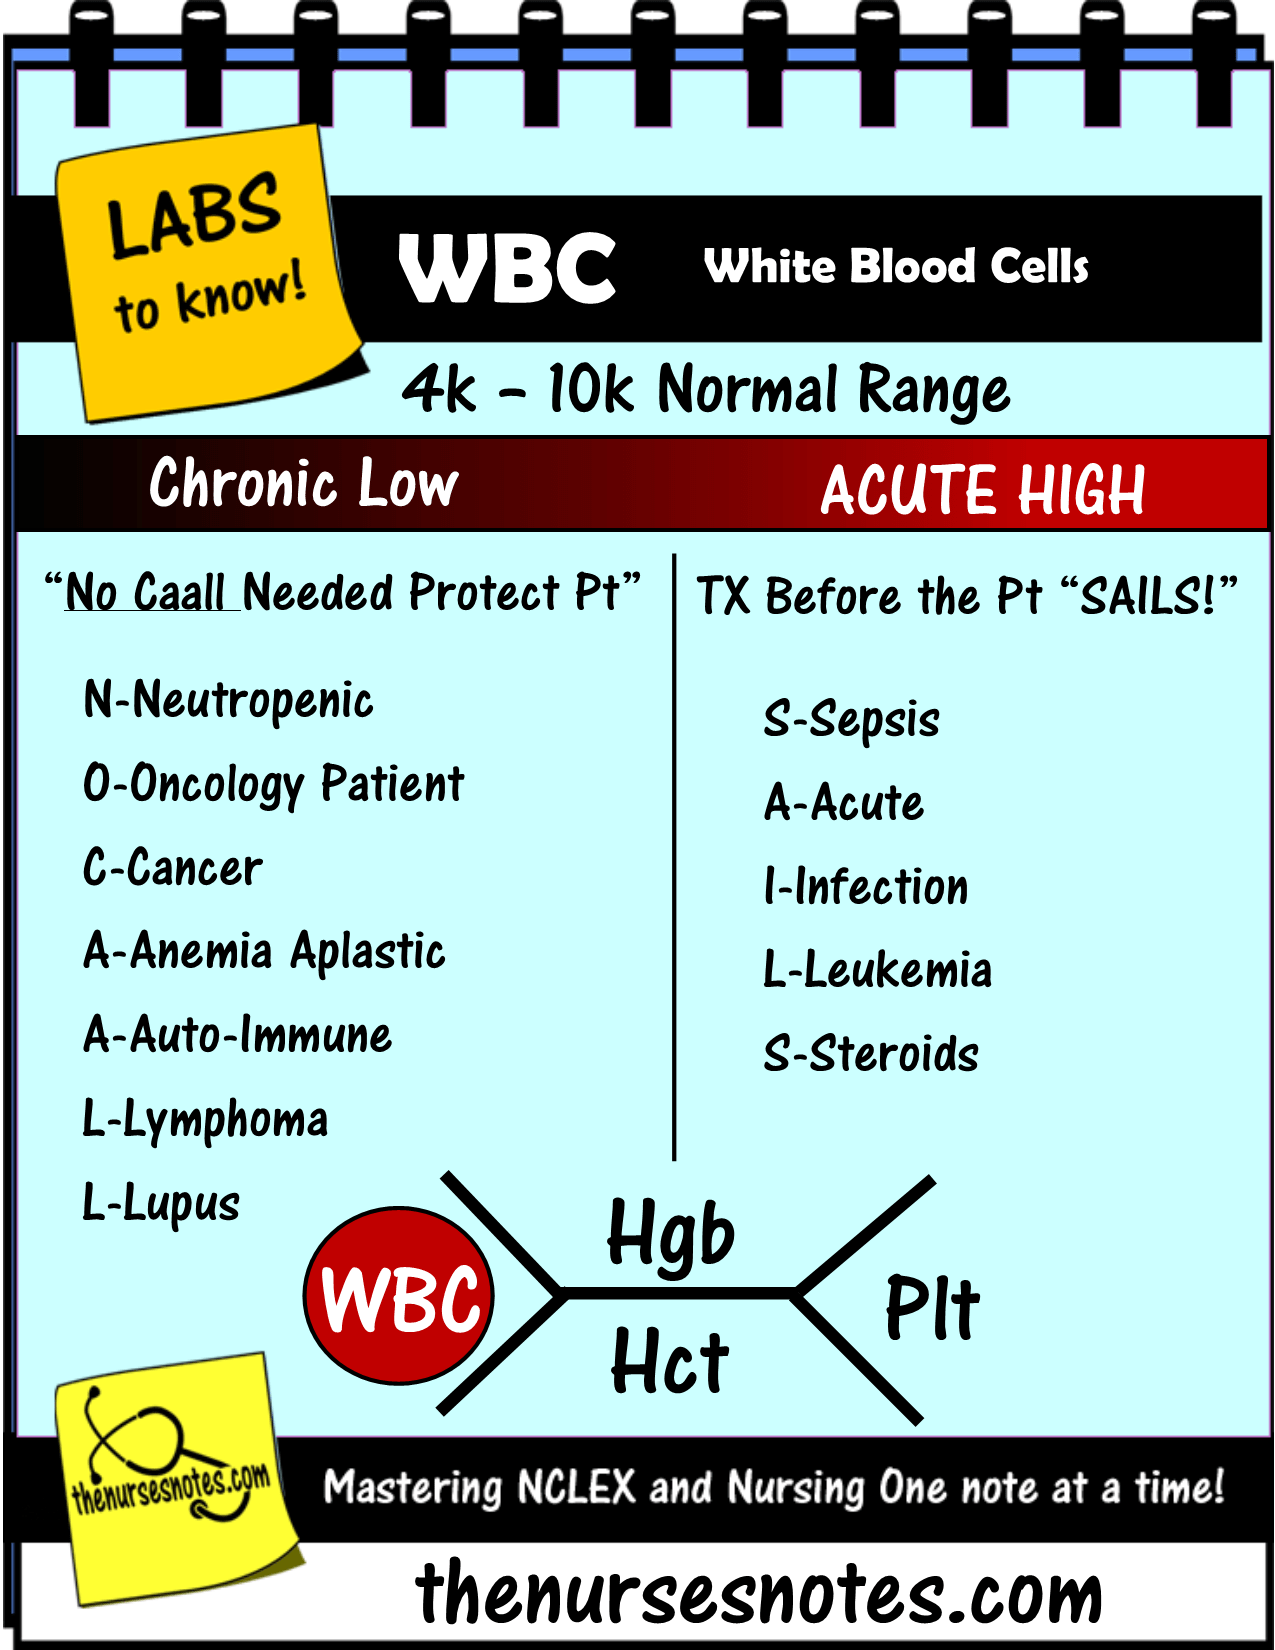 Cbc Complete Blood Count Wbc Platelets Hgb Hct Bmp Chem7 Fishbone Diagram Explaining Labs